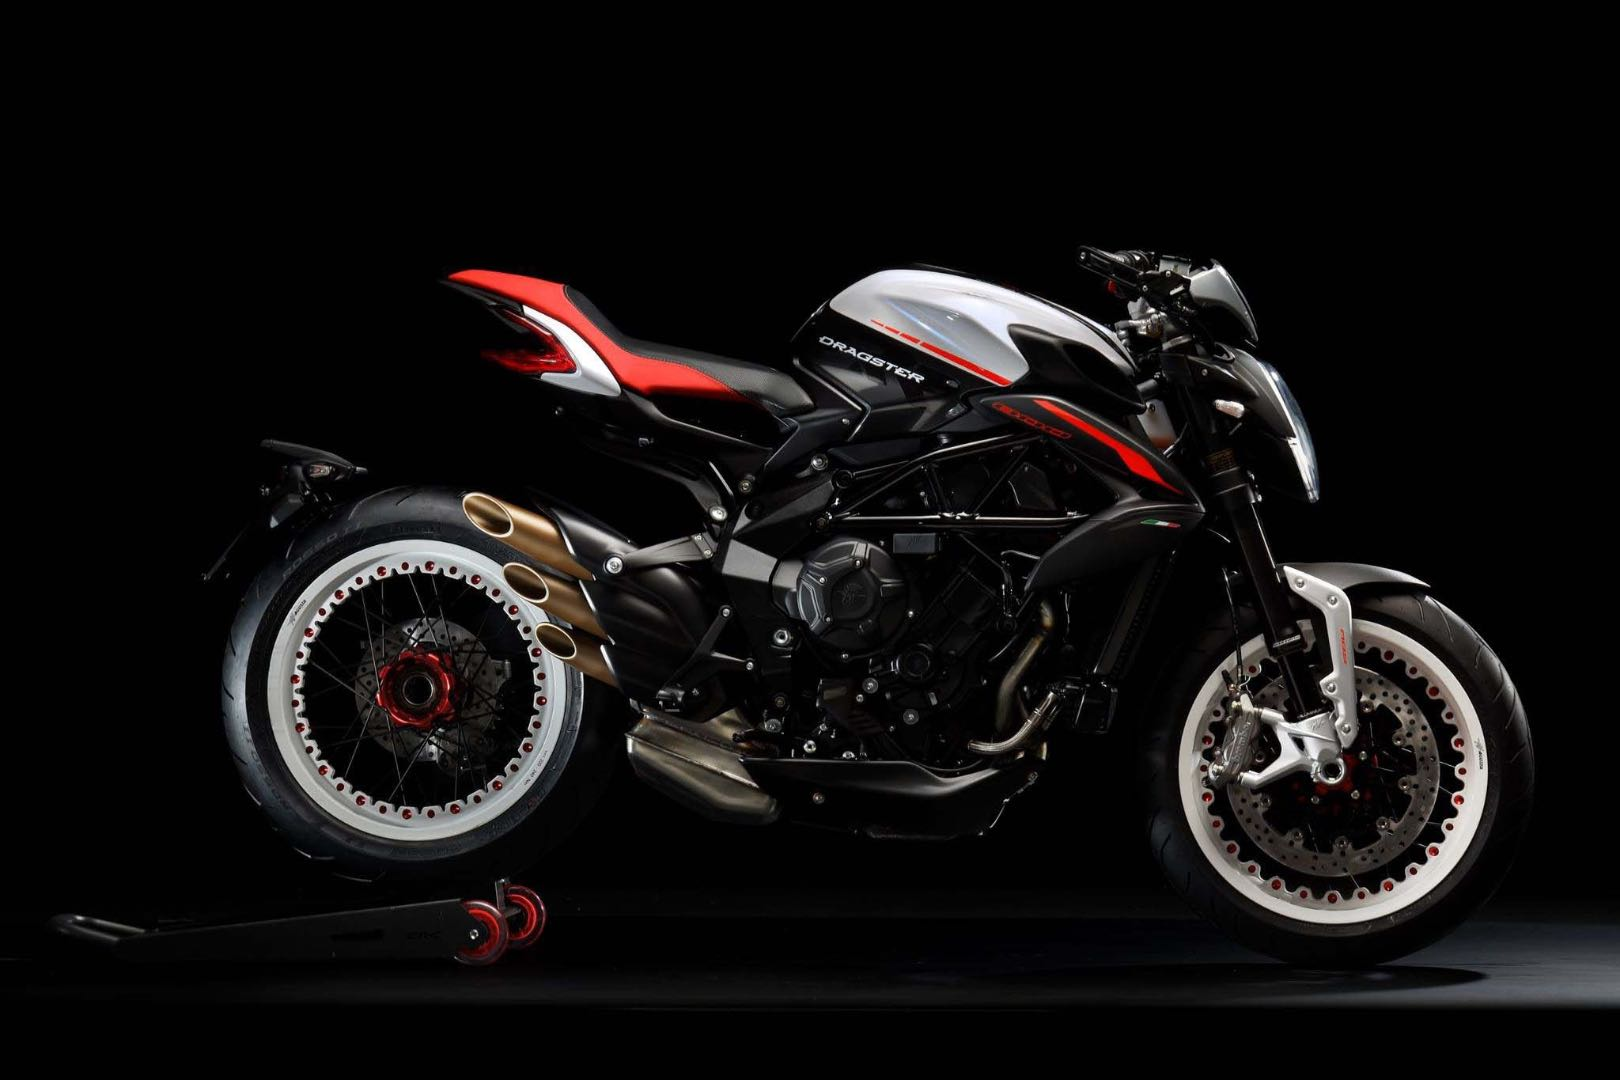 2018 MV Agusta Dragster 800 RR for sale